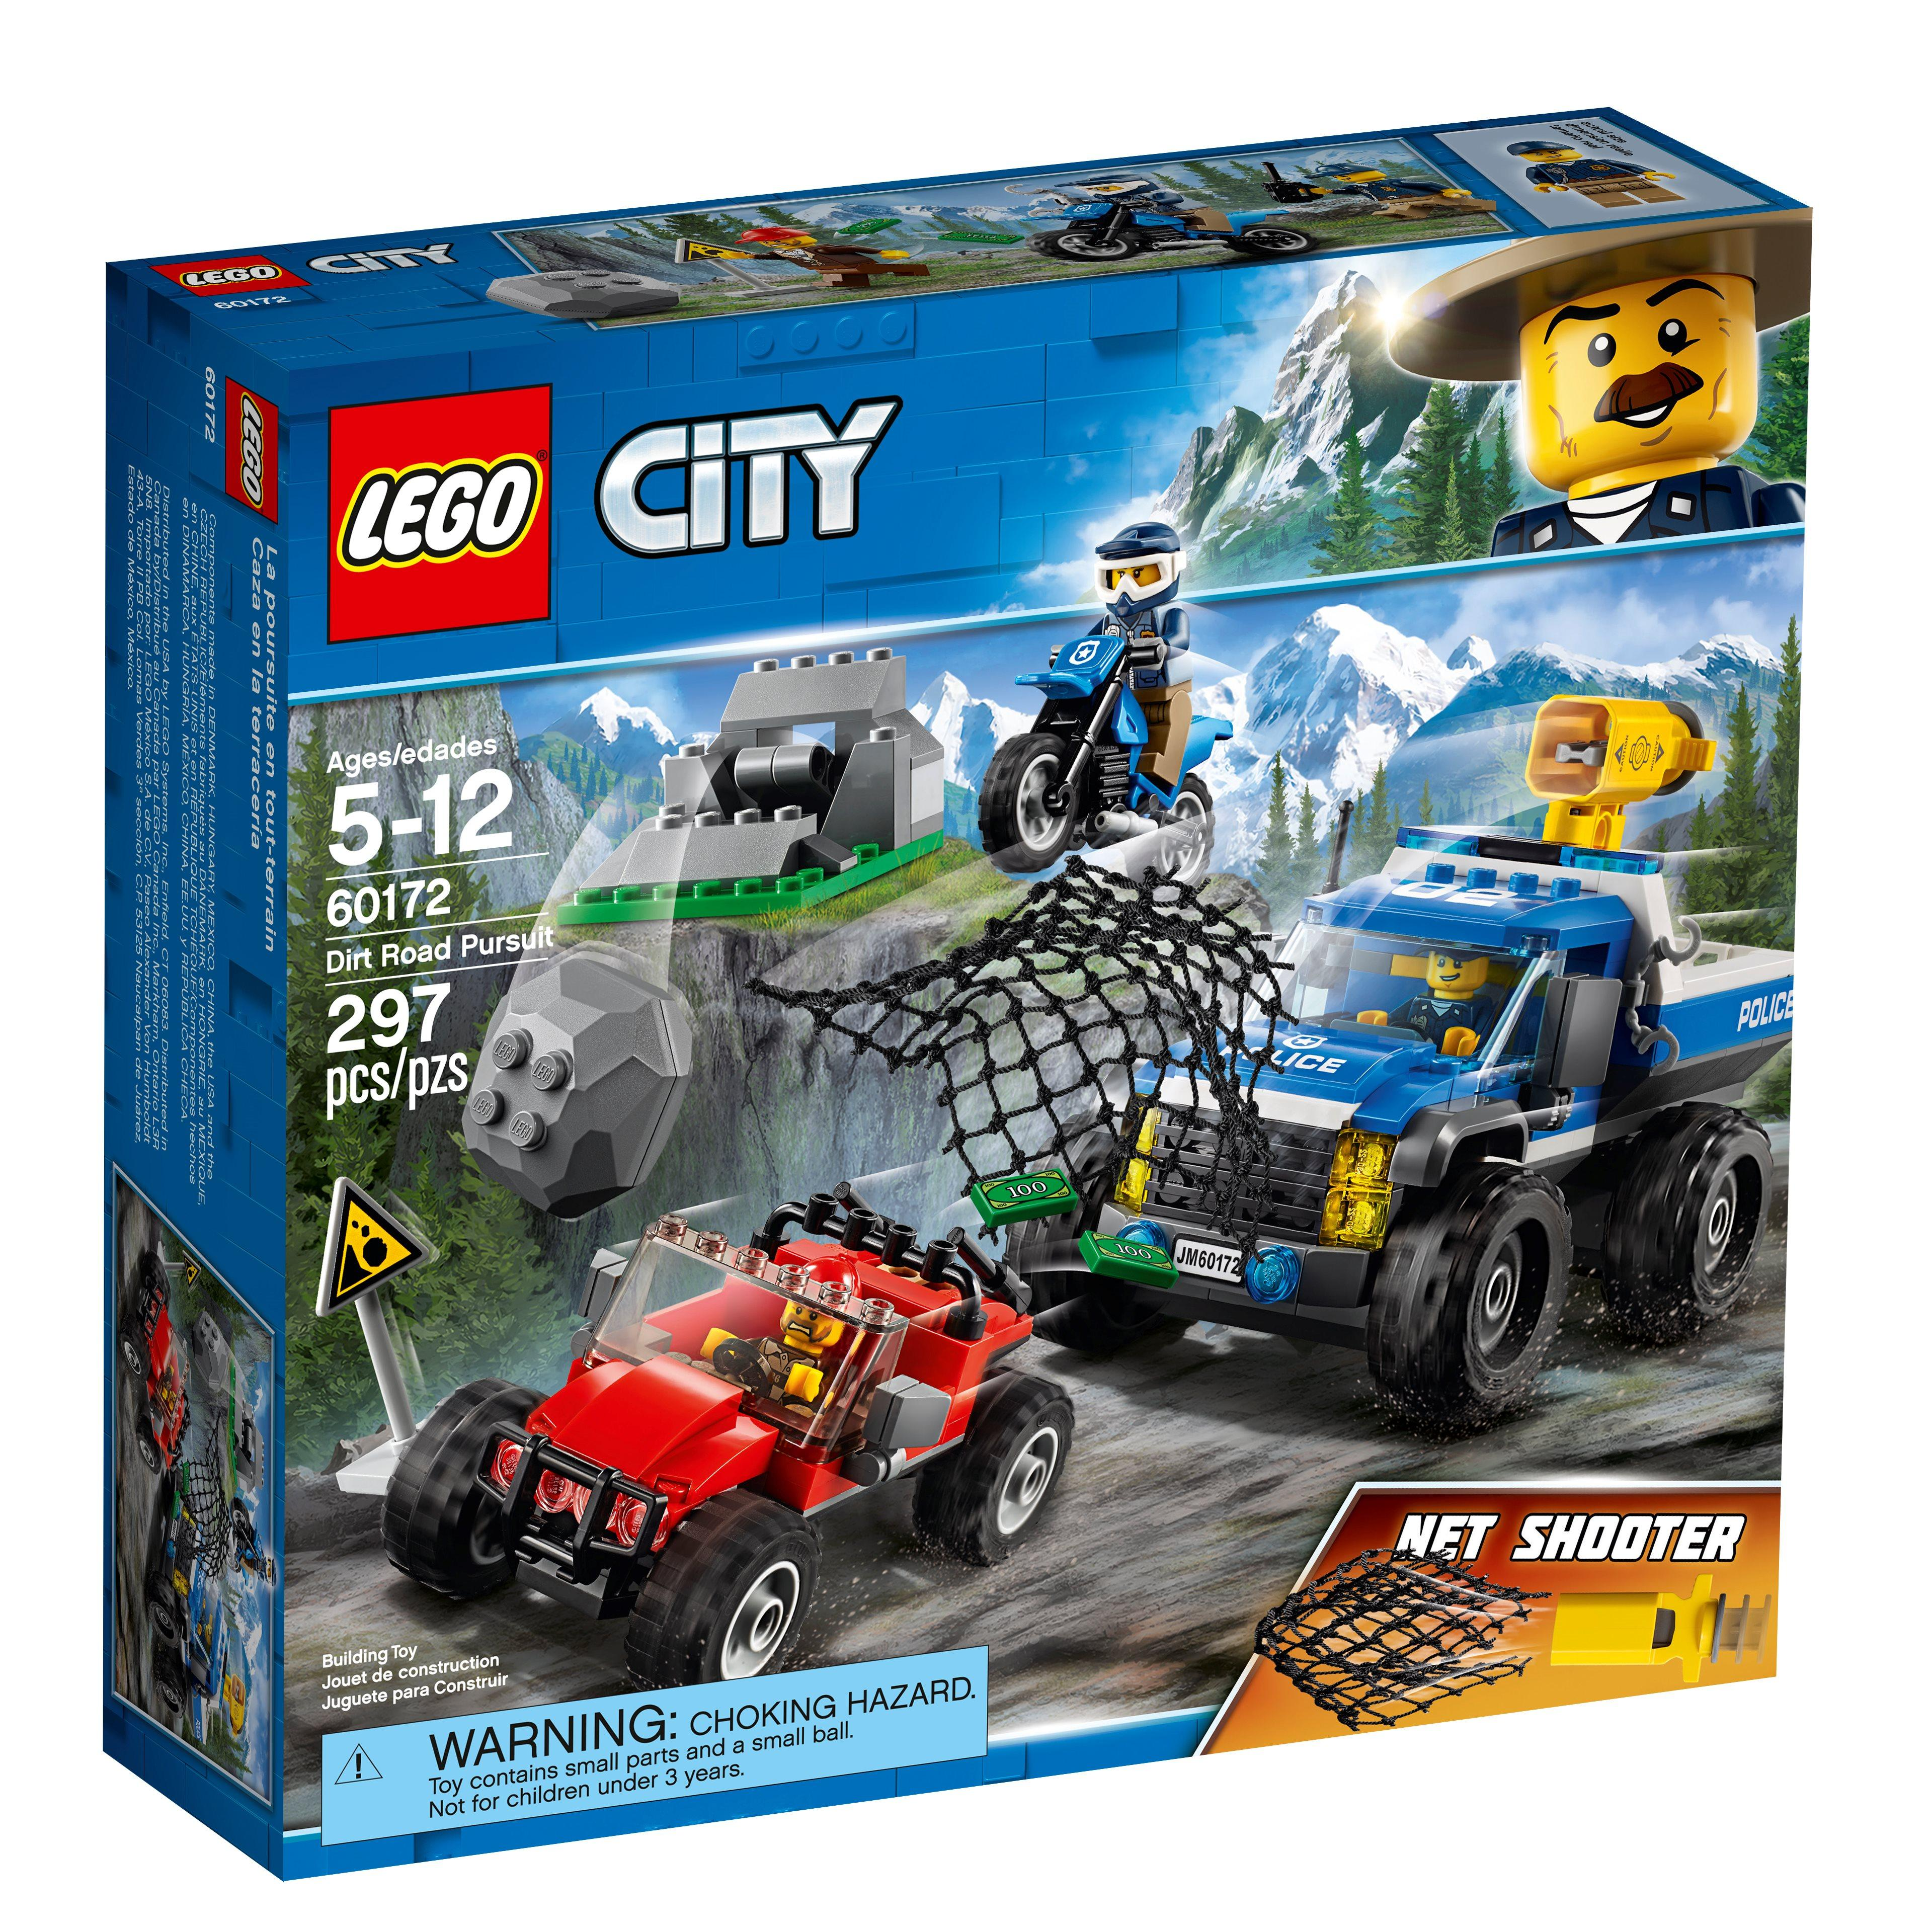 Lego City Dirt Road Pursuit (60172)